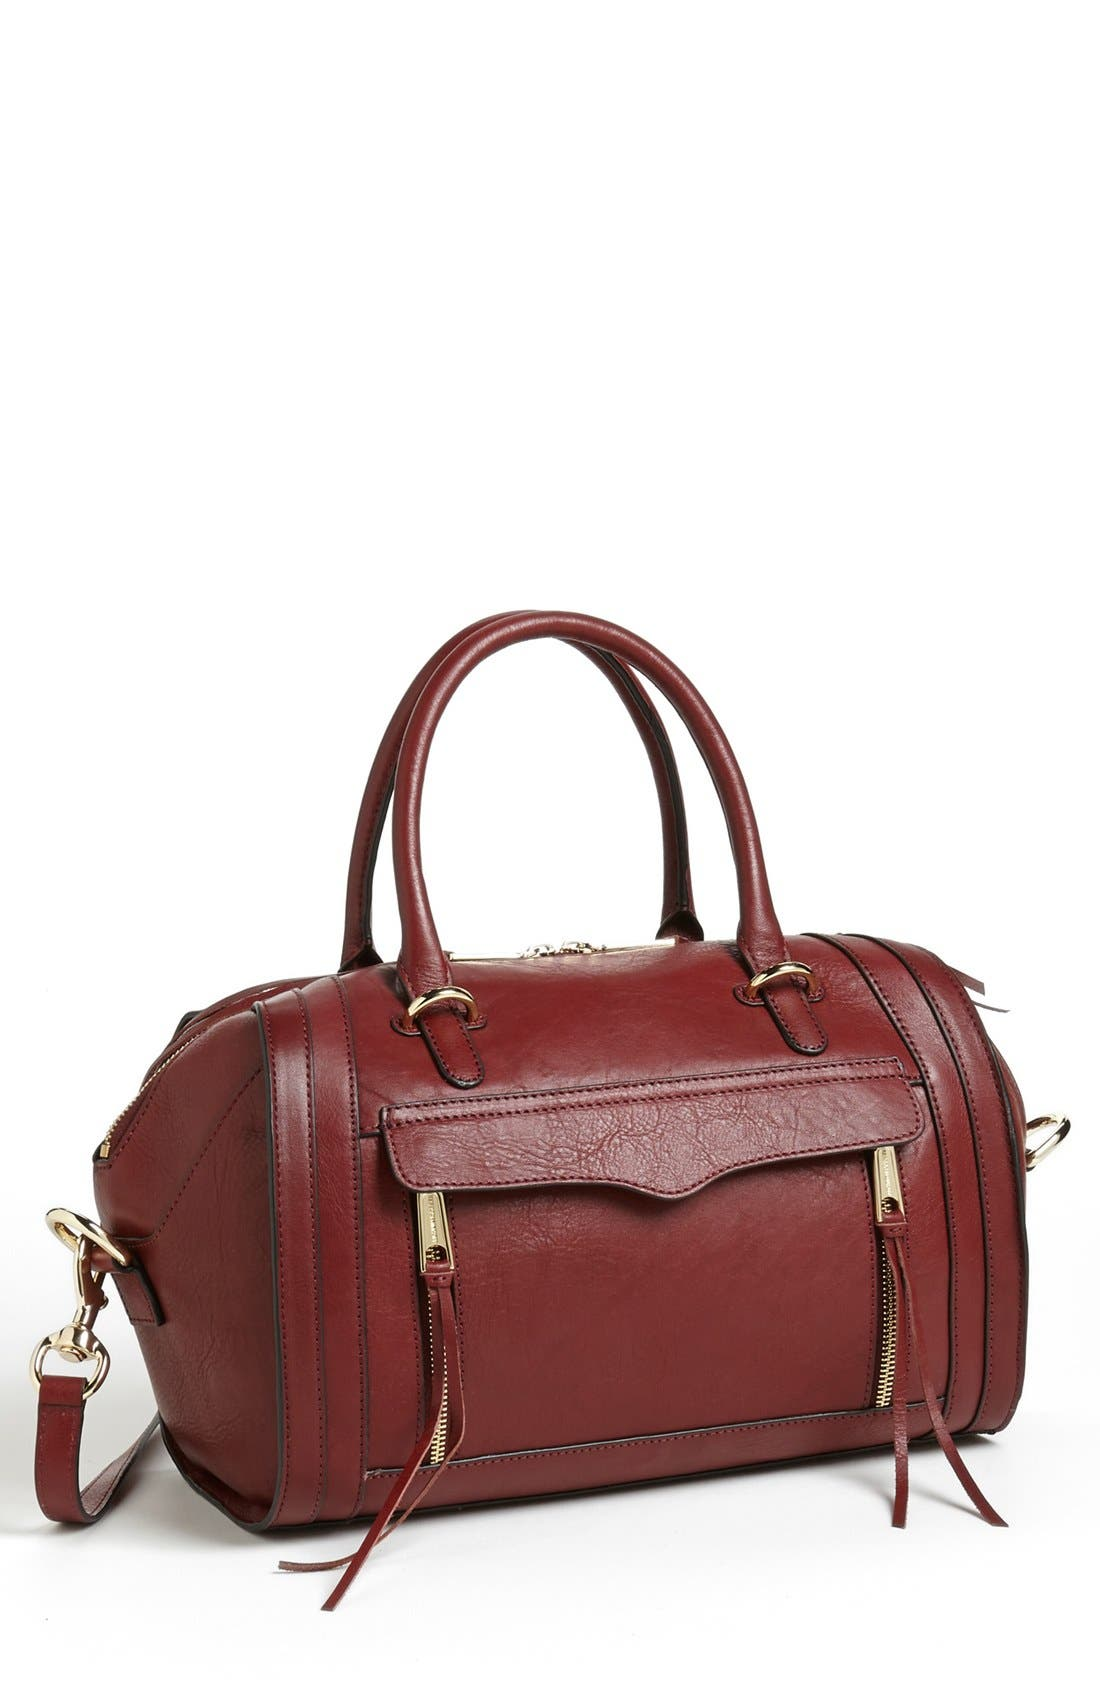 Alternate Image 1 Selected - Rebecca Minkoff 'Darcy' Leather Satchel (Nordstrom Exclusive)